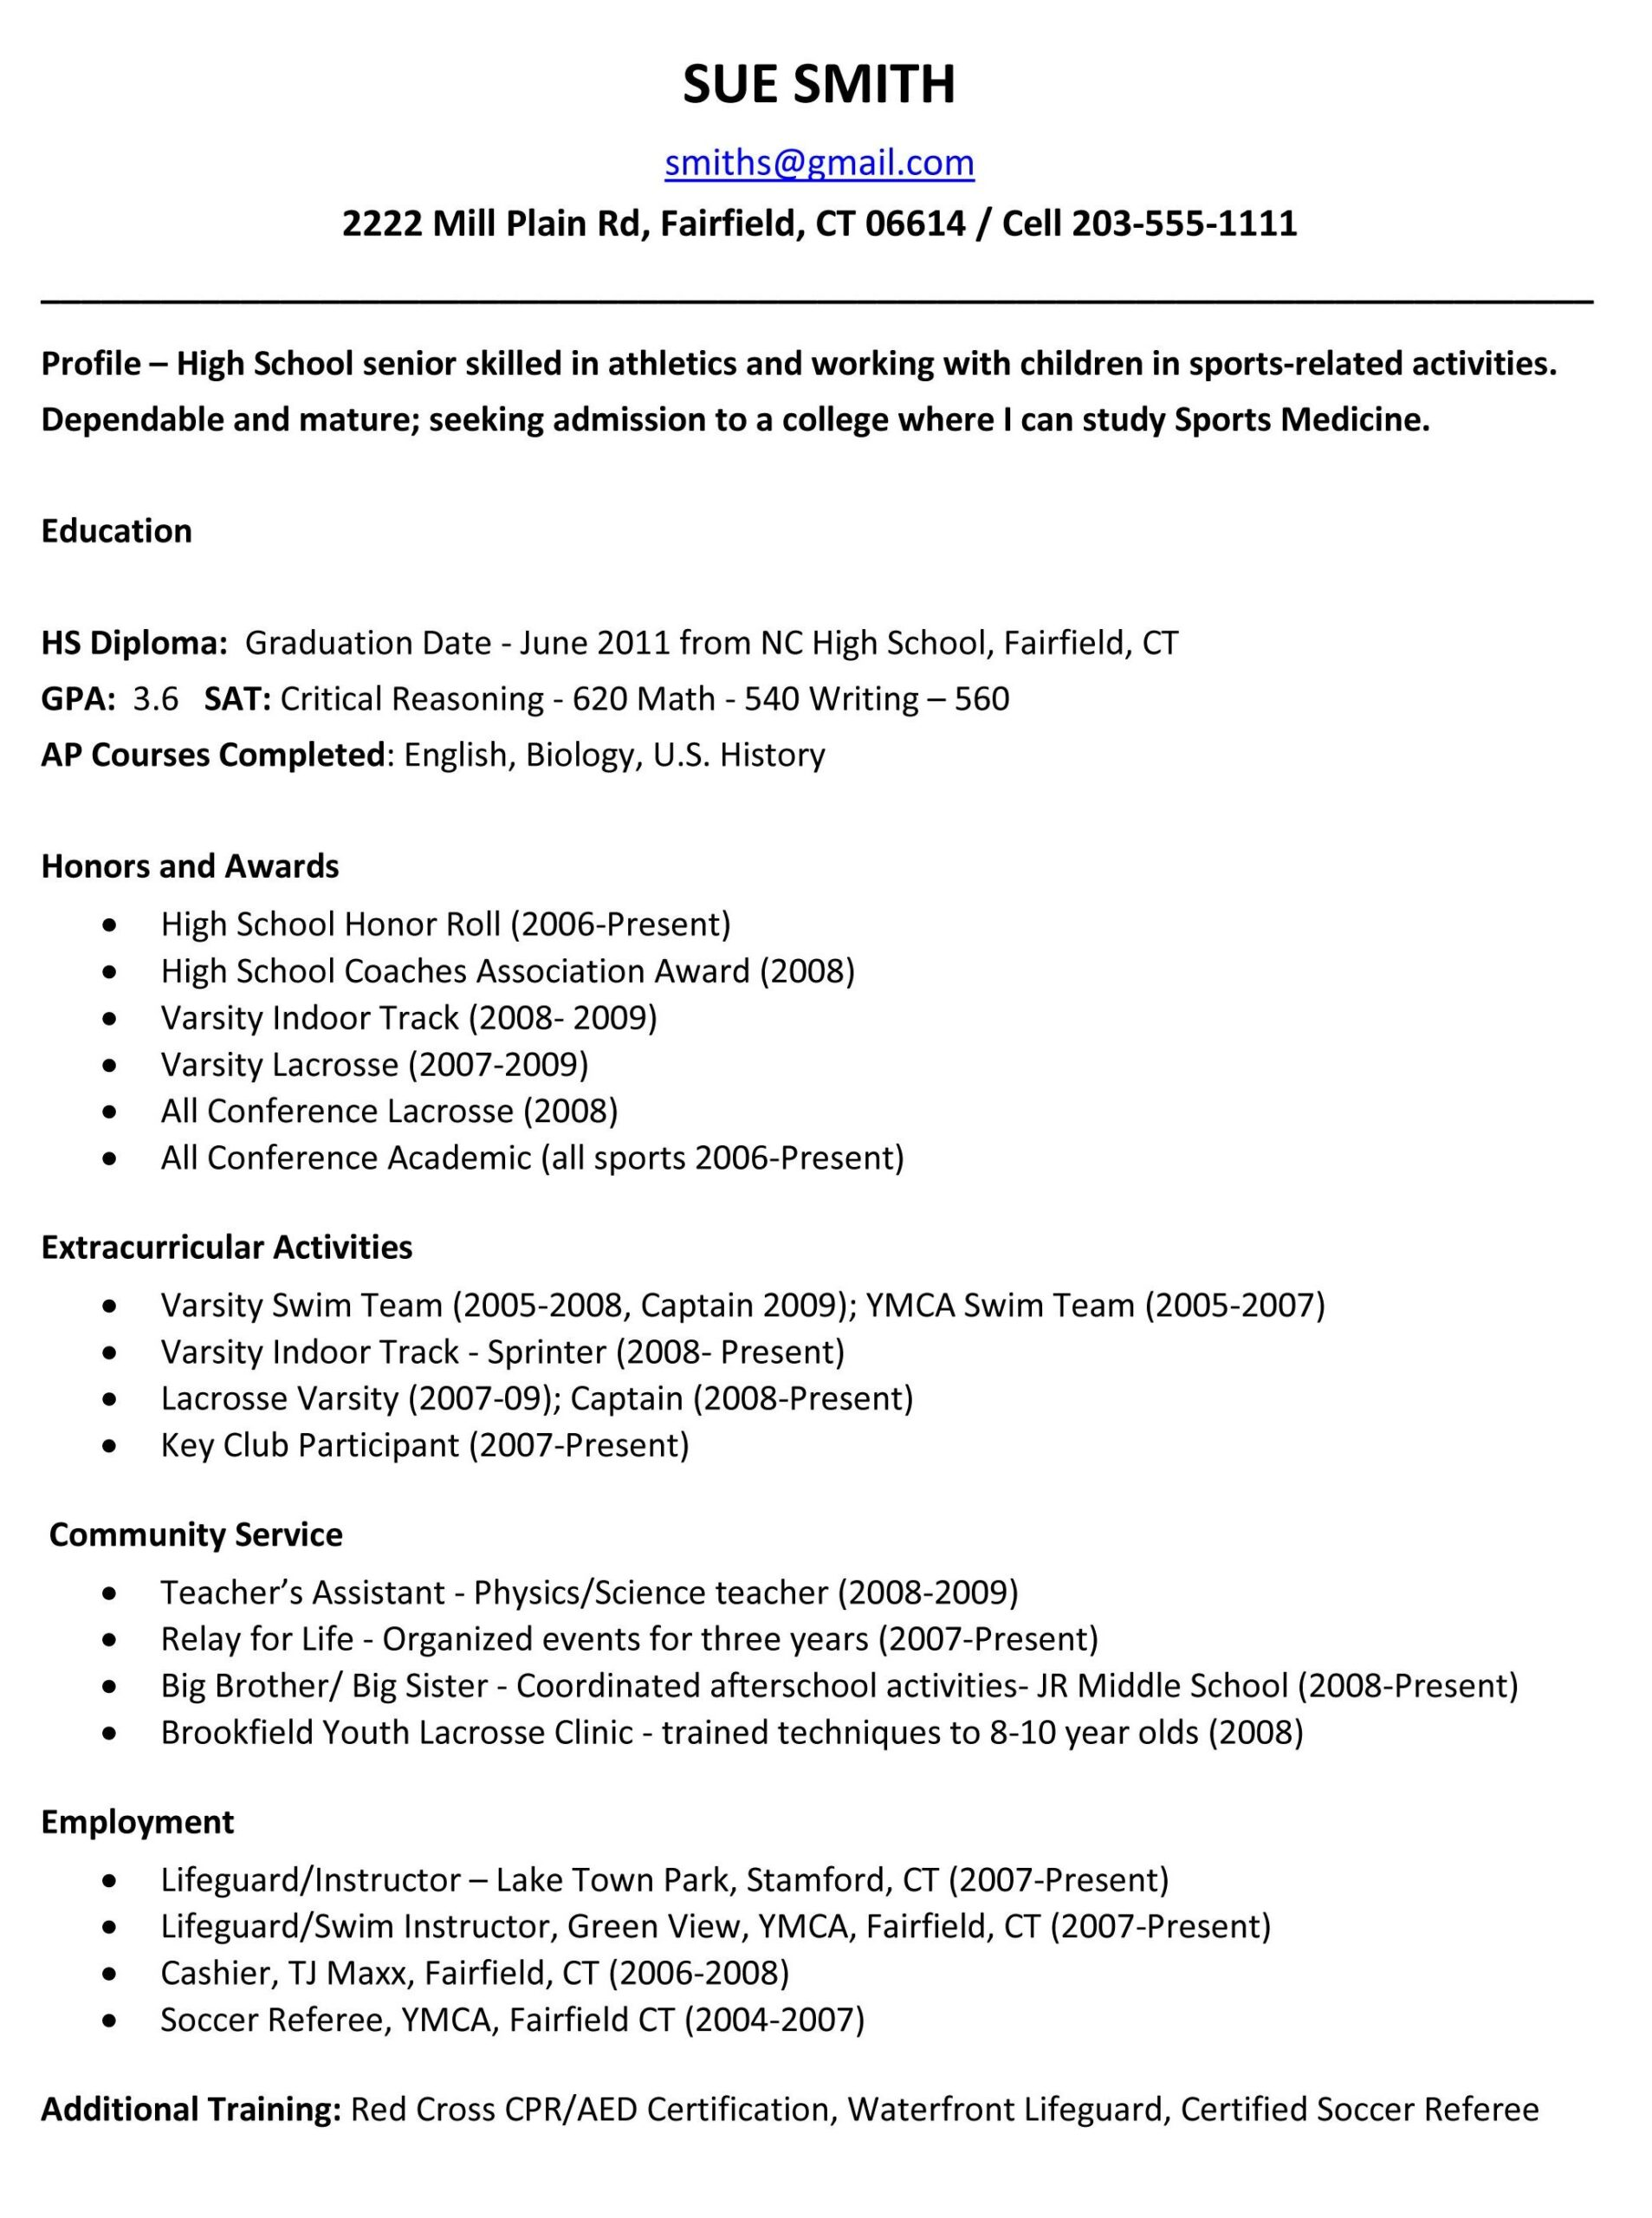 sample resumes high school resume template college application for seniors nsw Resume Sample College Application Resume For High School Seniors